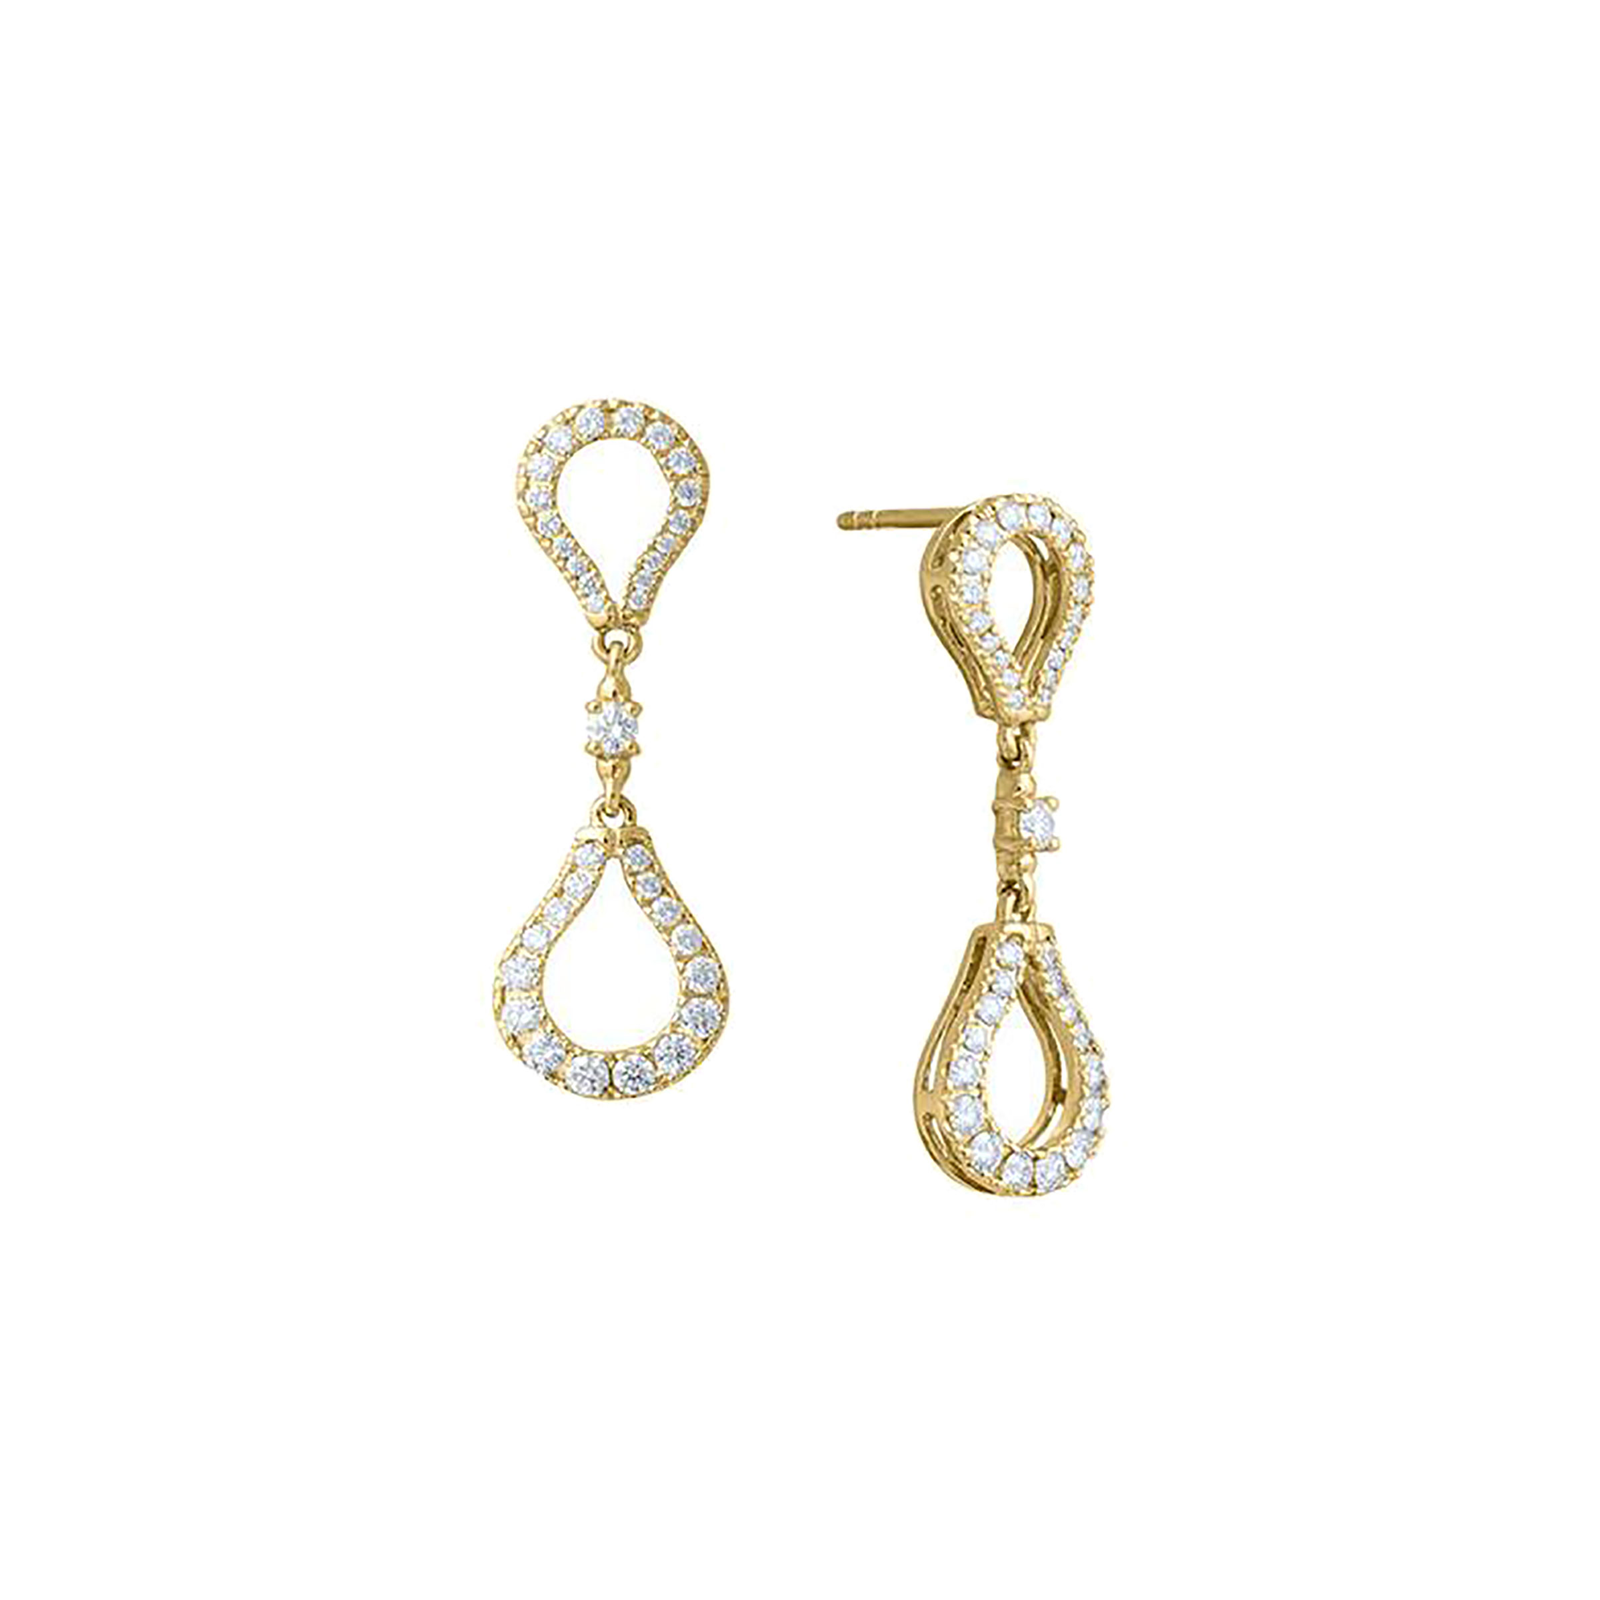 Di Modolo Fiama 18ct Yellow Gold 1.15cttw Diamond Pave Drop Earrings